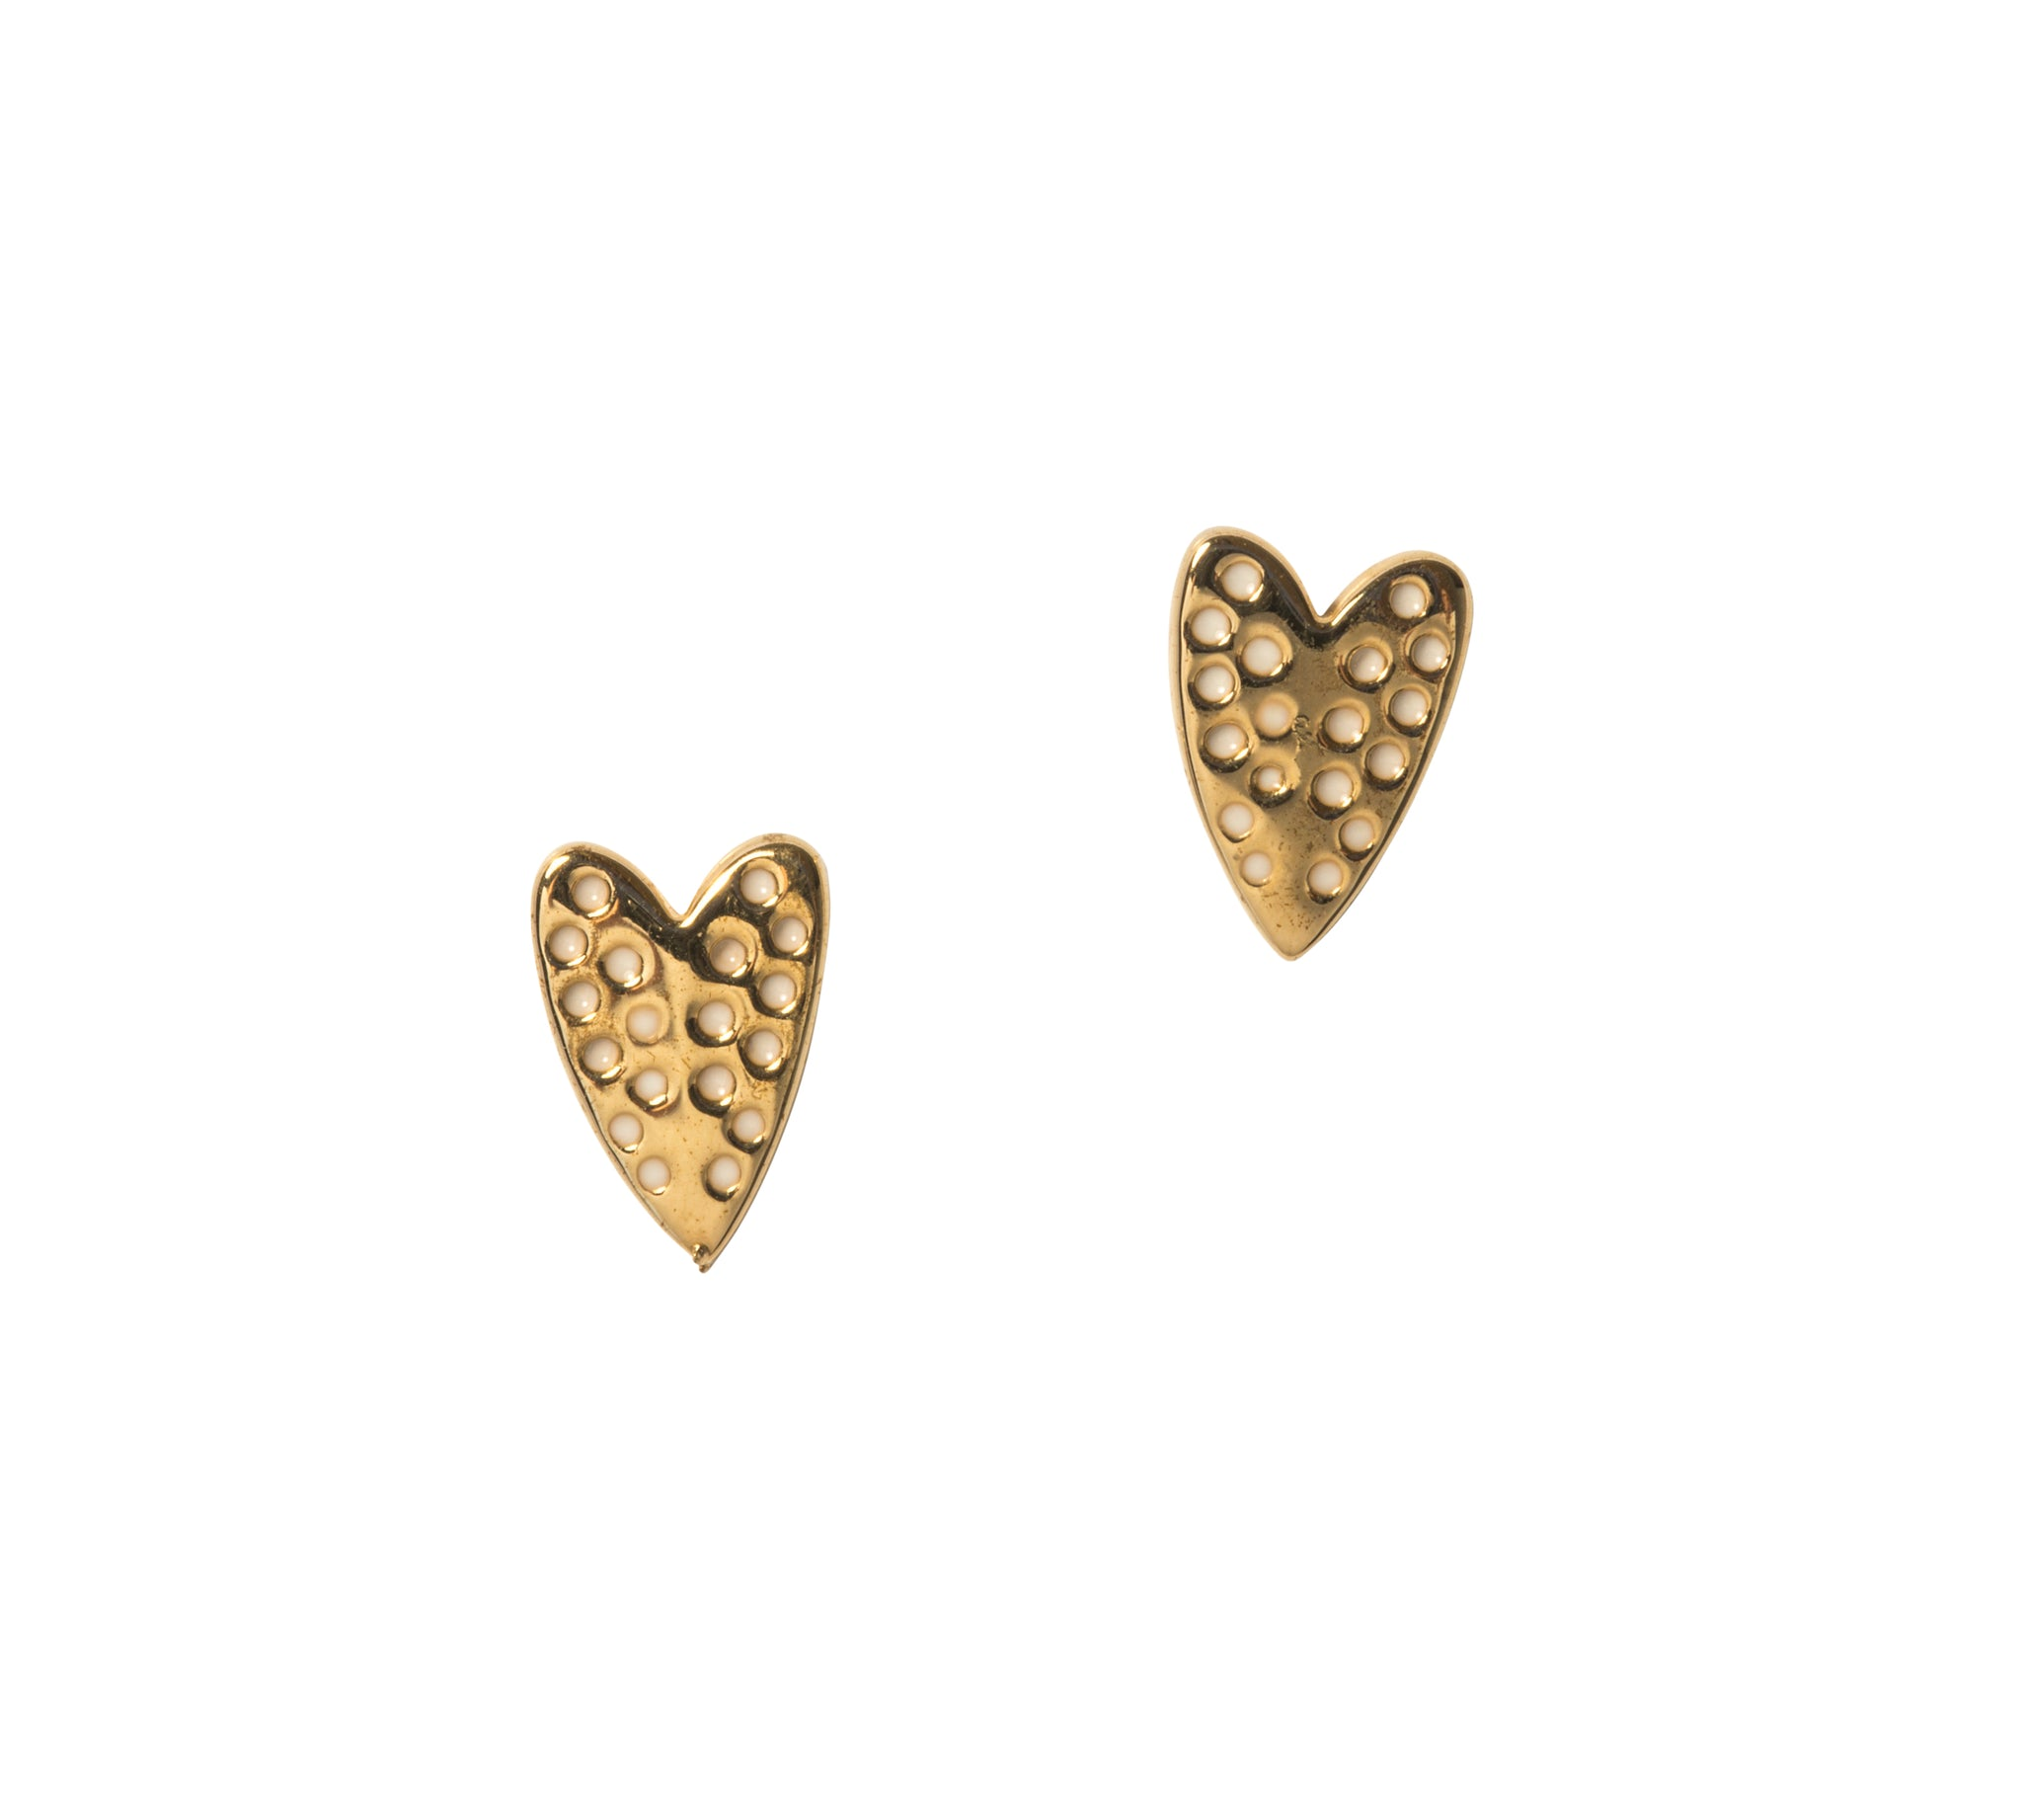 Goldbug Love On Top Heart Stud Earrings